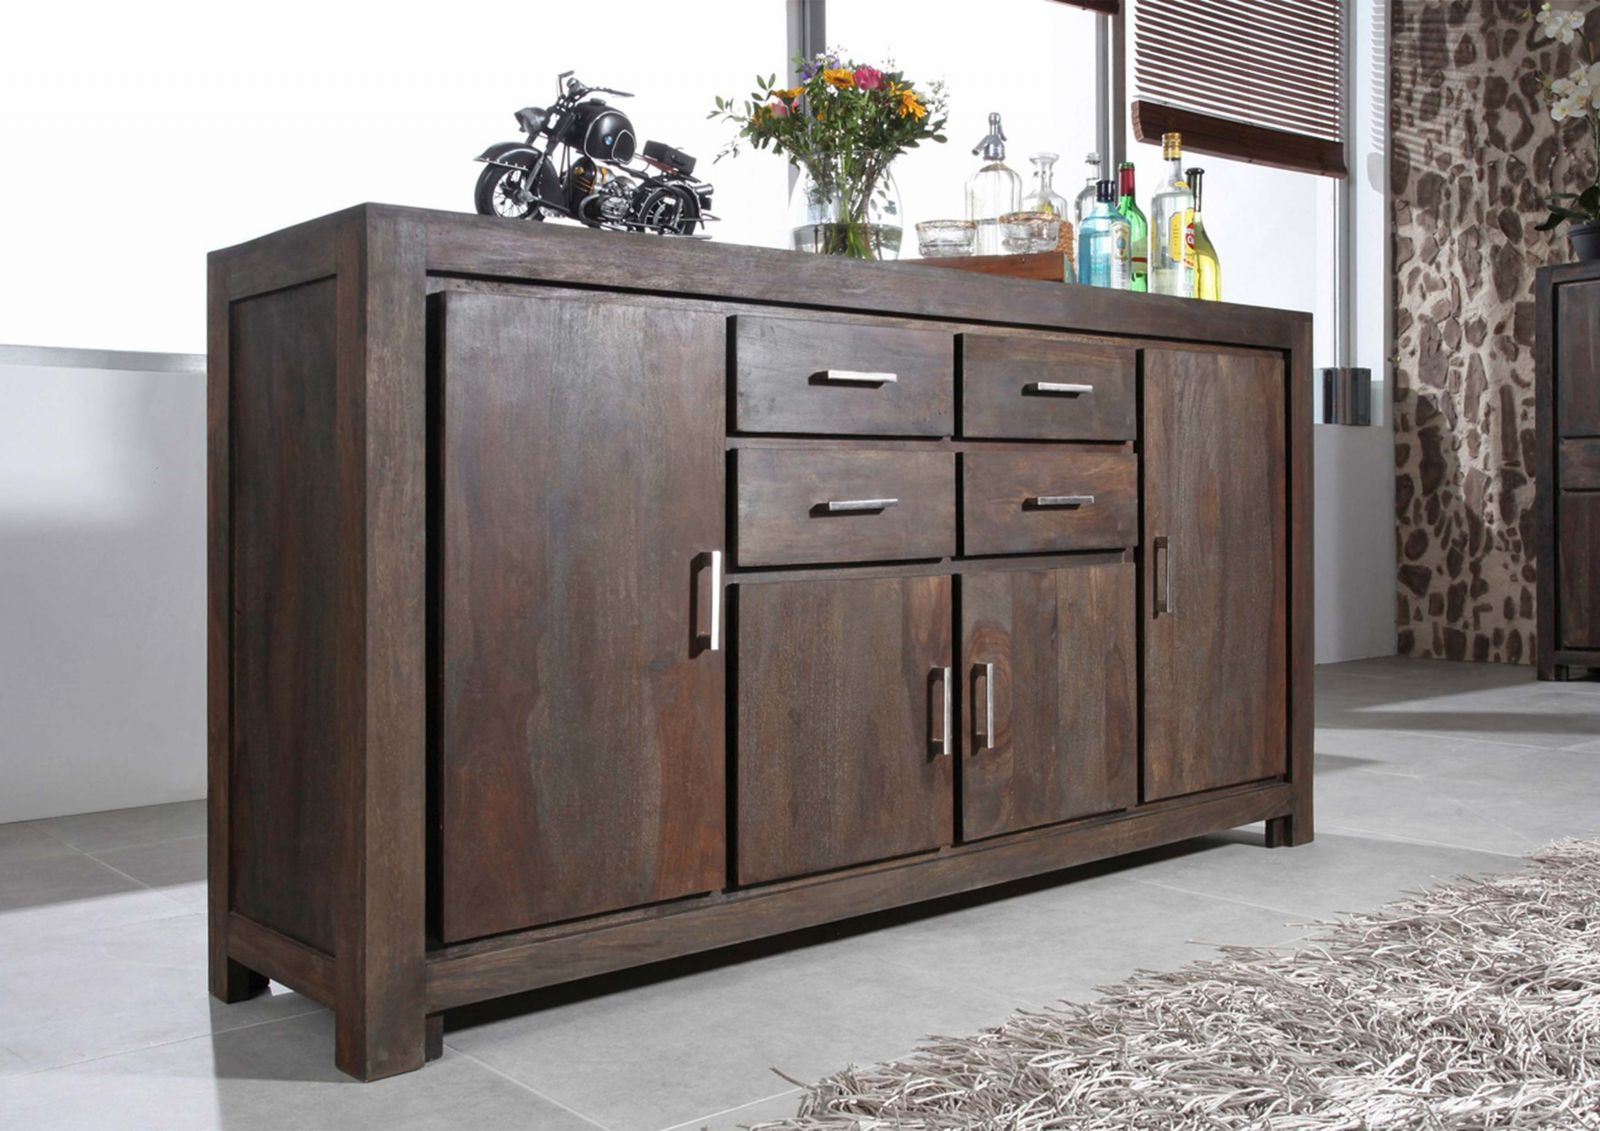 Sideboard Metro Polis Sheesham/palisander 178X45X95 Cm Modern Intended For Most Current Metro Sideboards (#10 of 20)